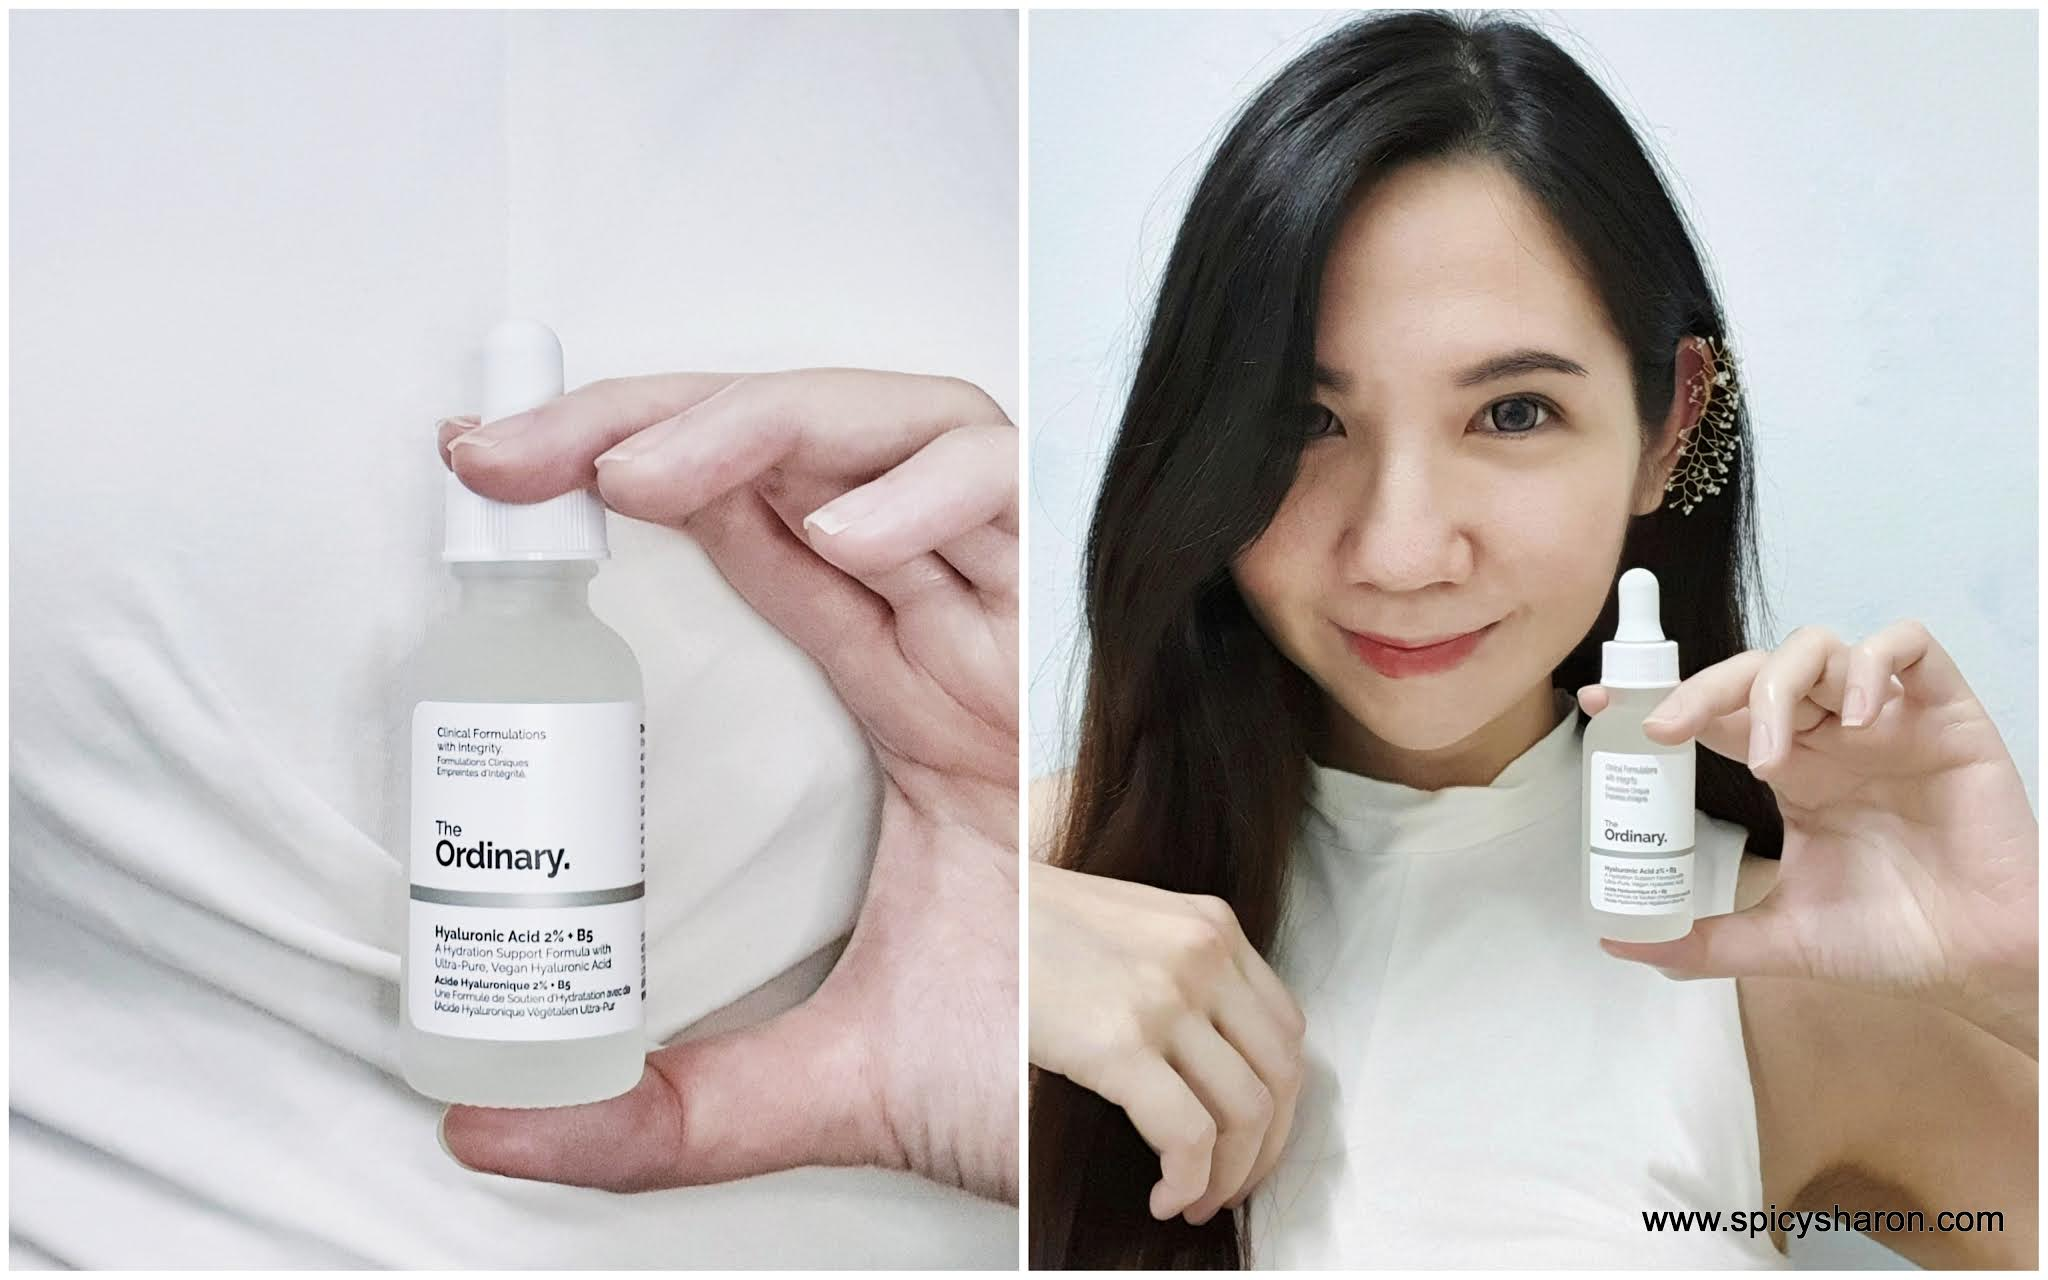 Product Review : The Ordinary Niacinamide 10% + Zinc 1% And Hyaluronic Acid 2% + B5